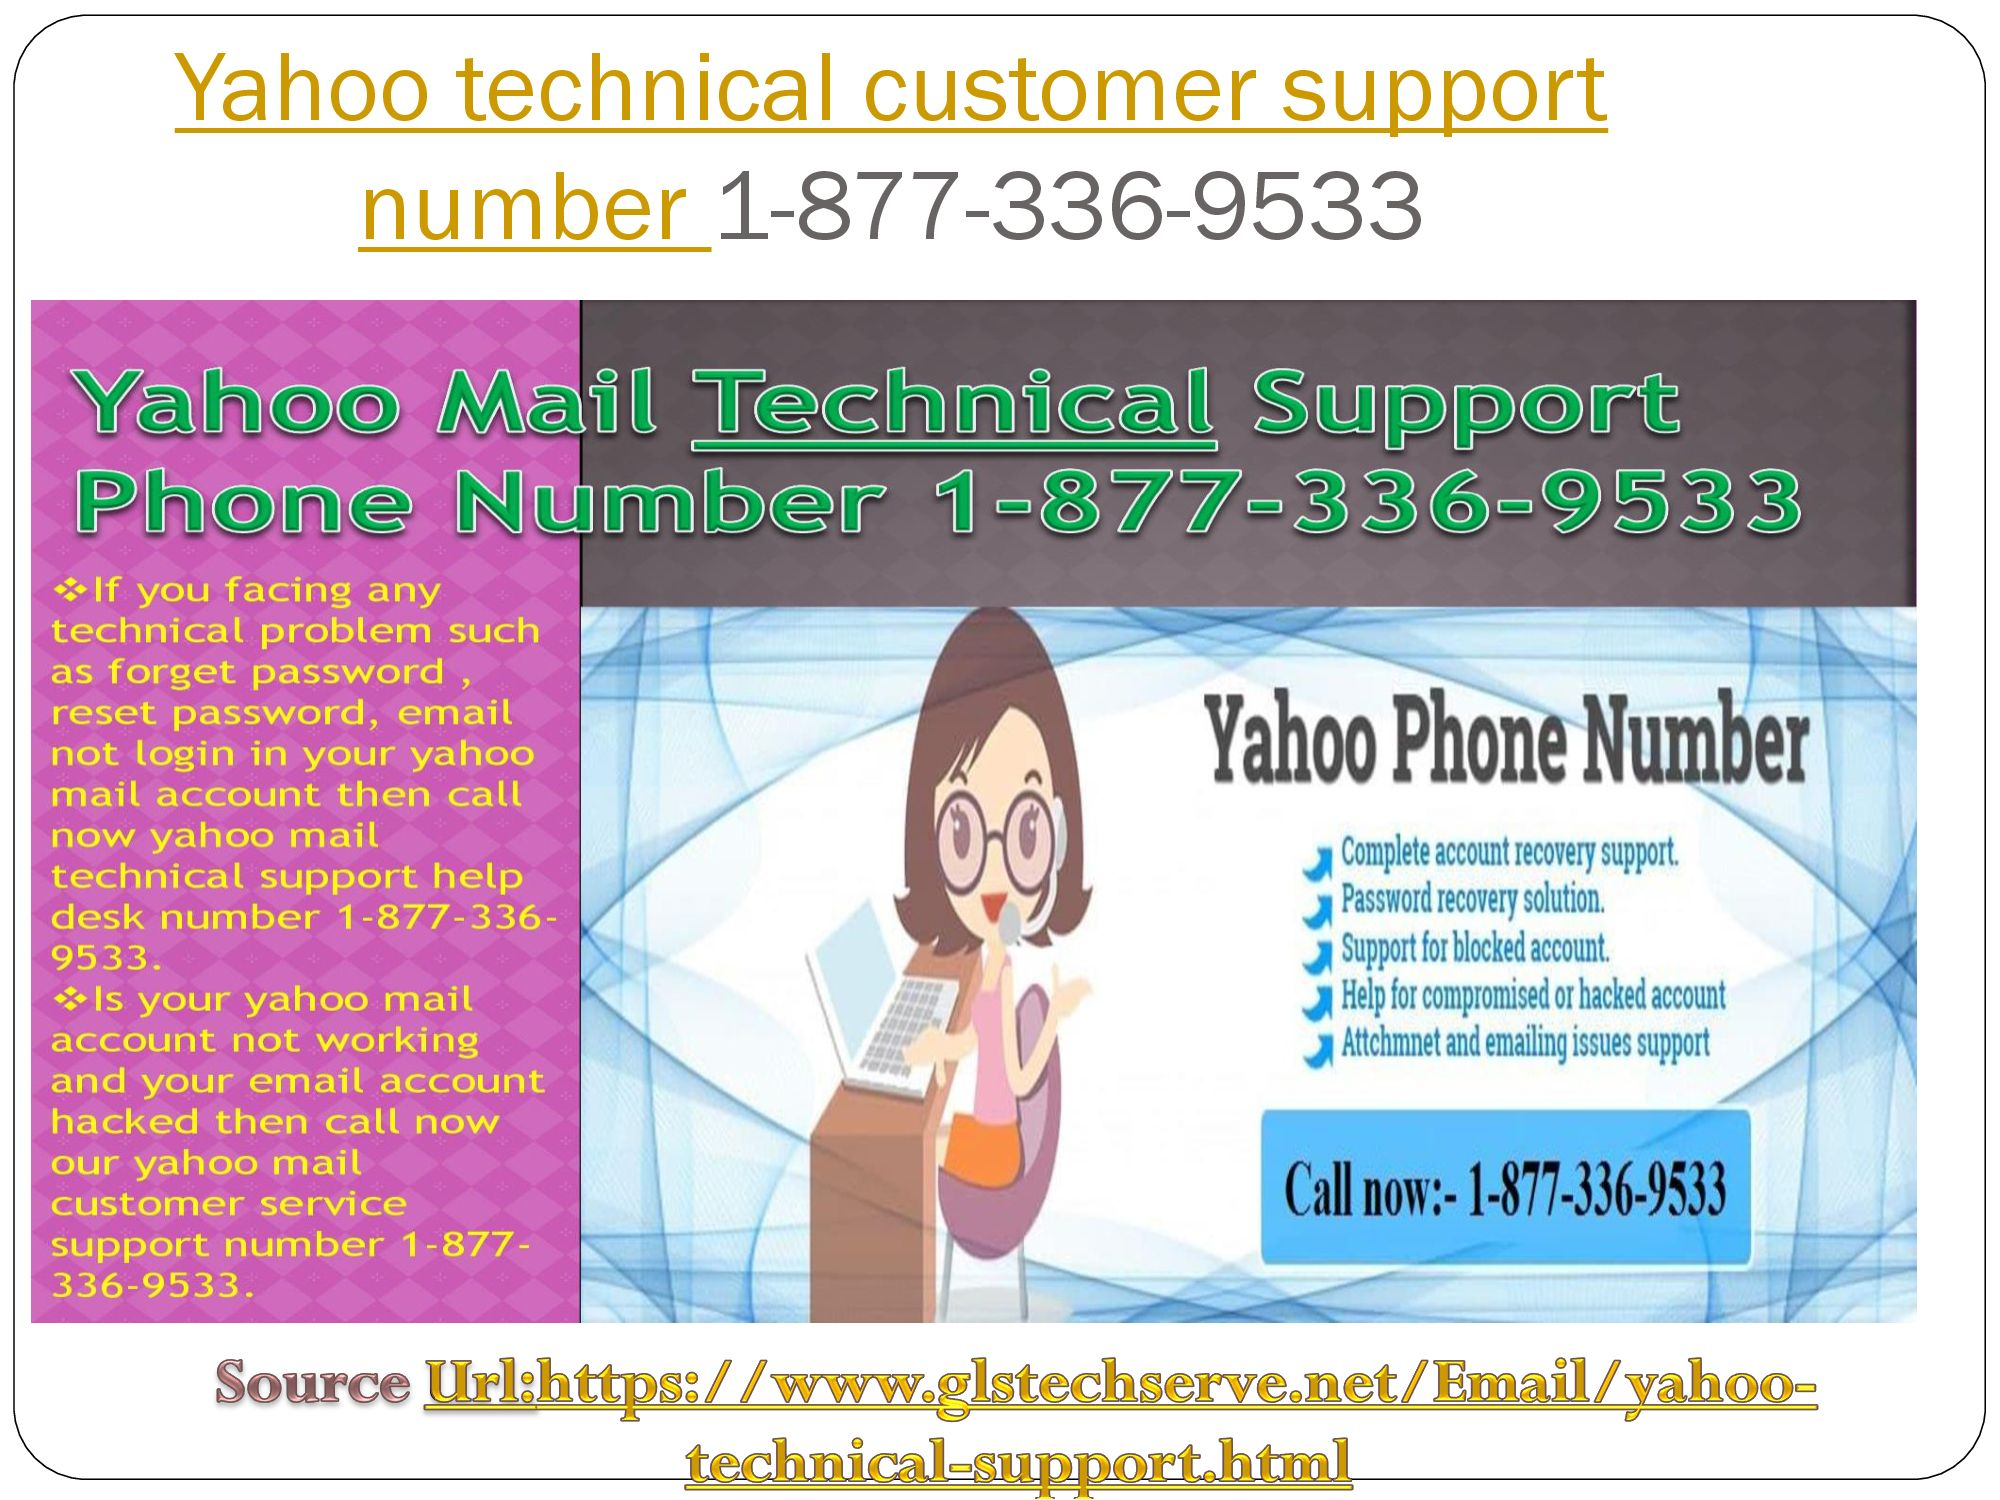 pin by johnsteffan on 1-877-336-9533@yahoo mail help desk support